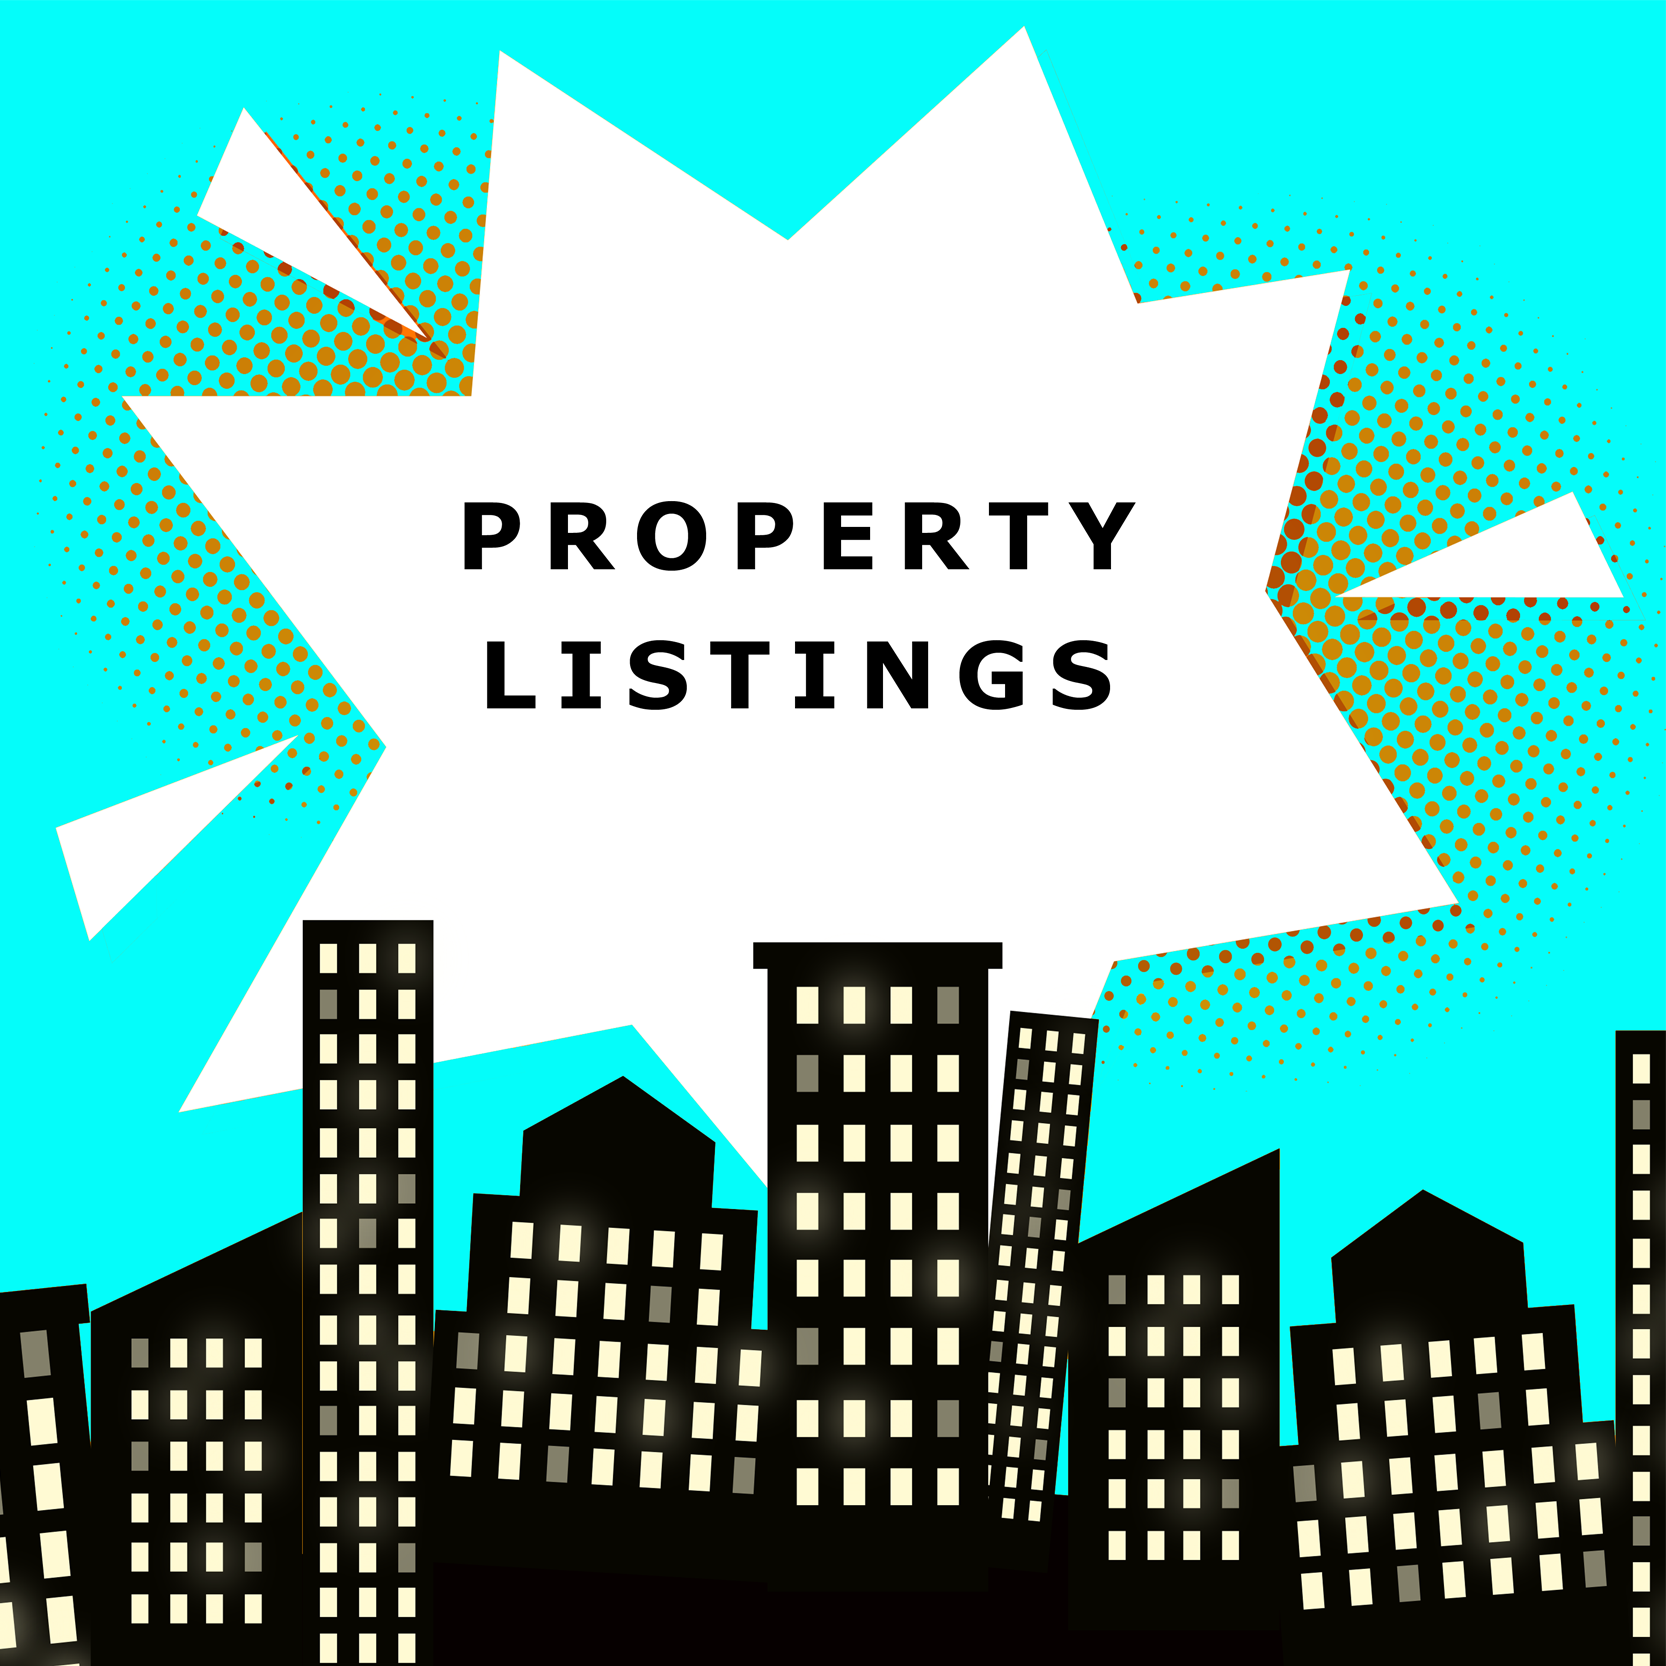 SummationIT property listings